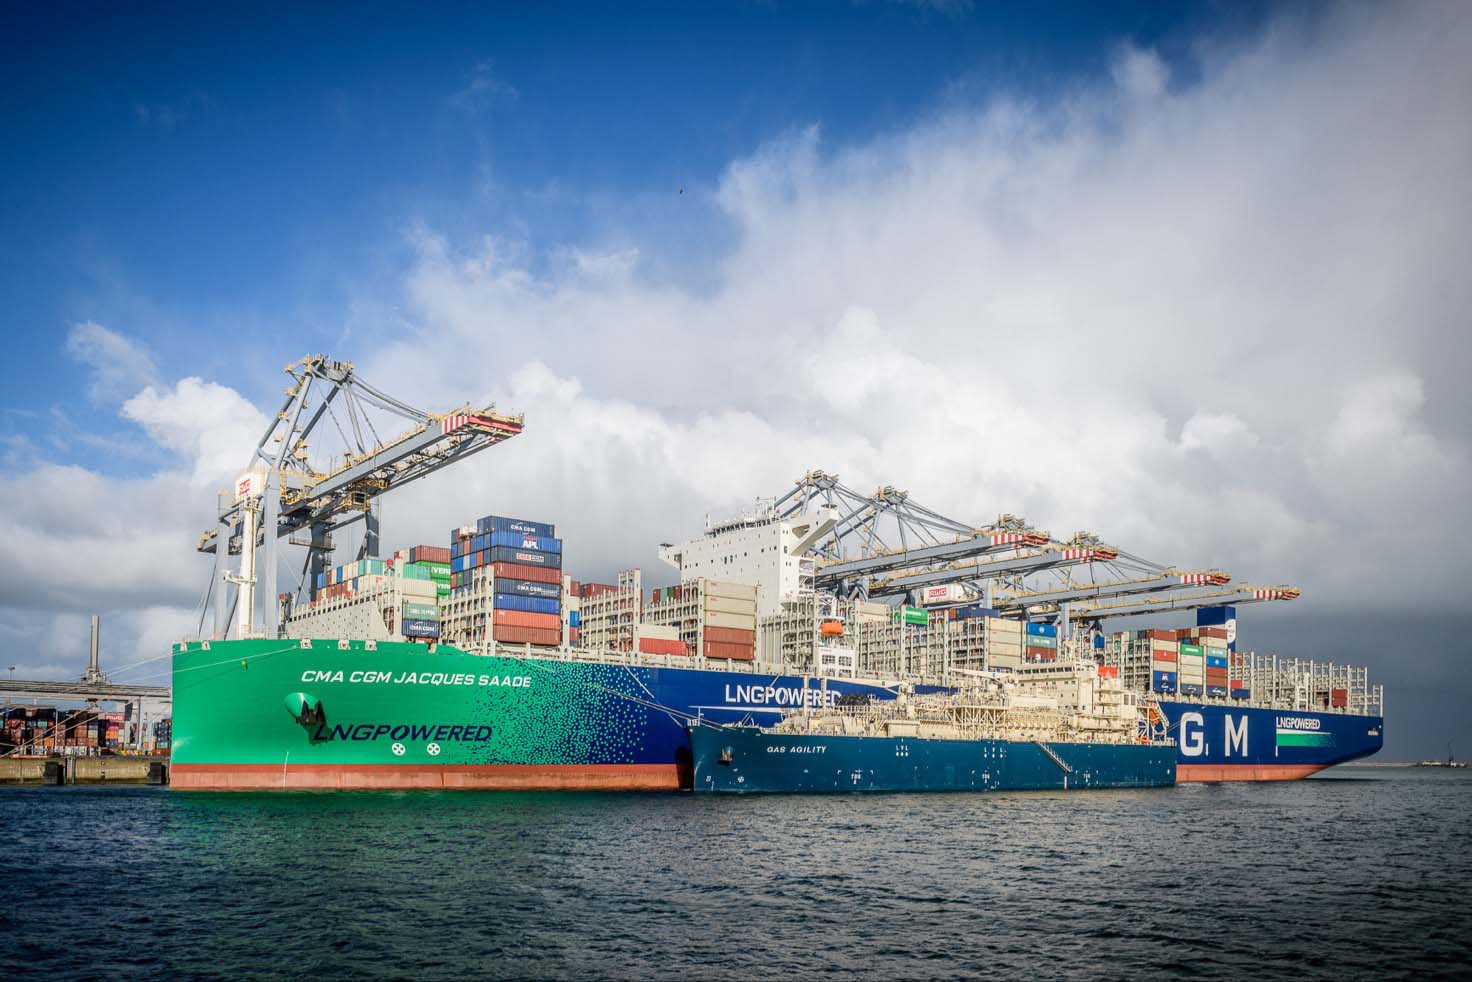 World premiere: bunkering of a new-generation LNG-powered container ships begins in Rotterdam